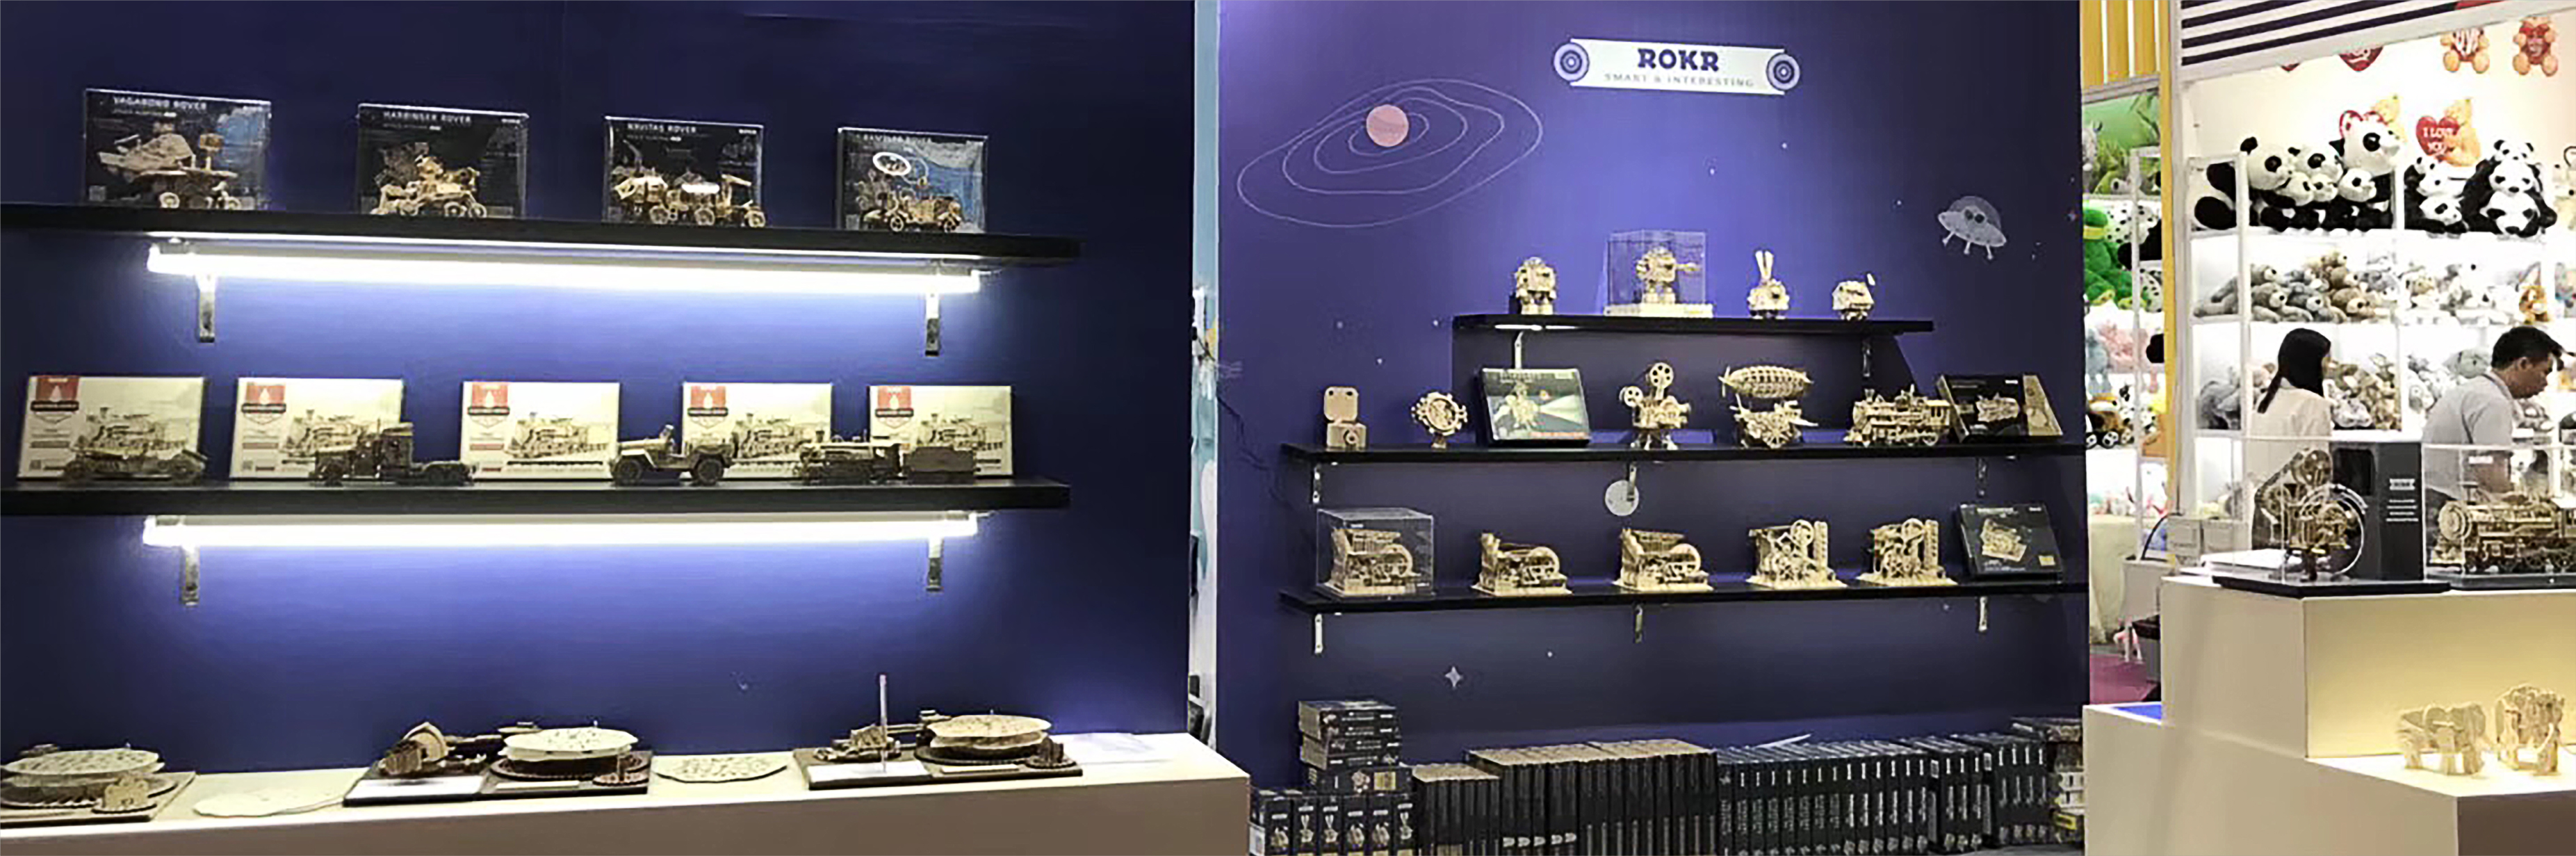 Robotime is bringing more new gadgets to Canton Fair 2019